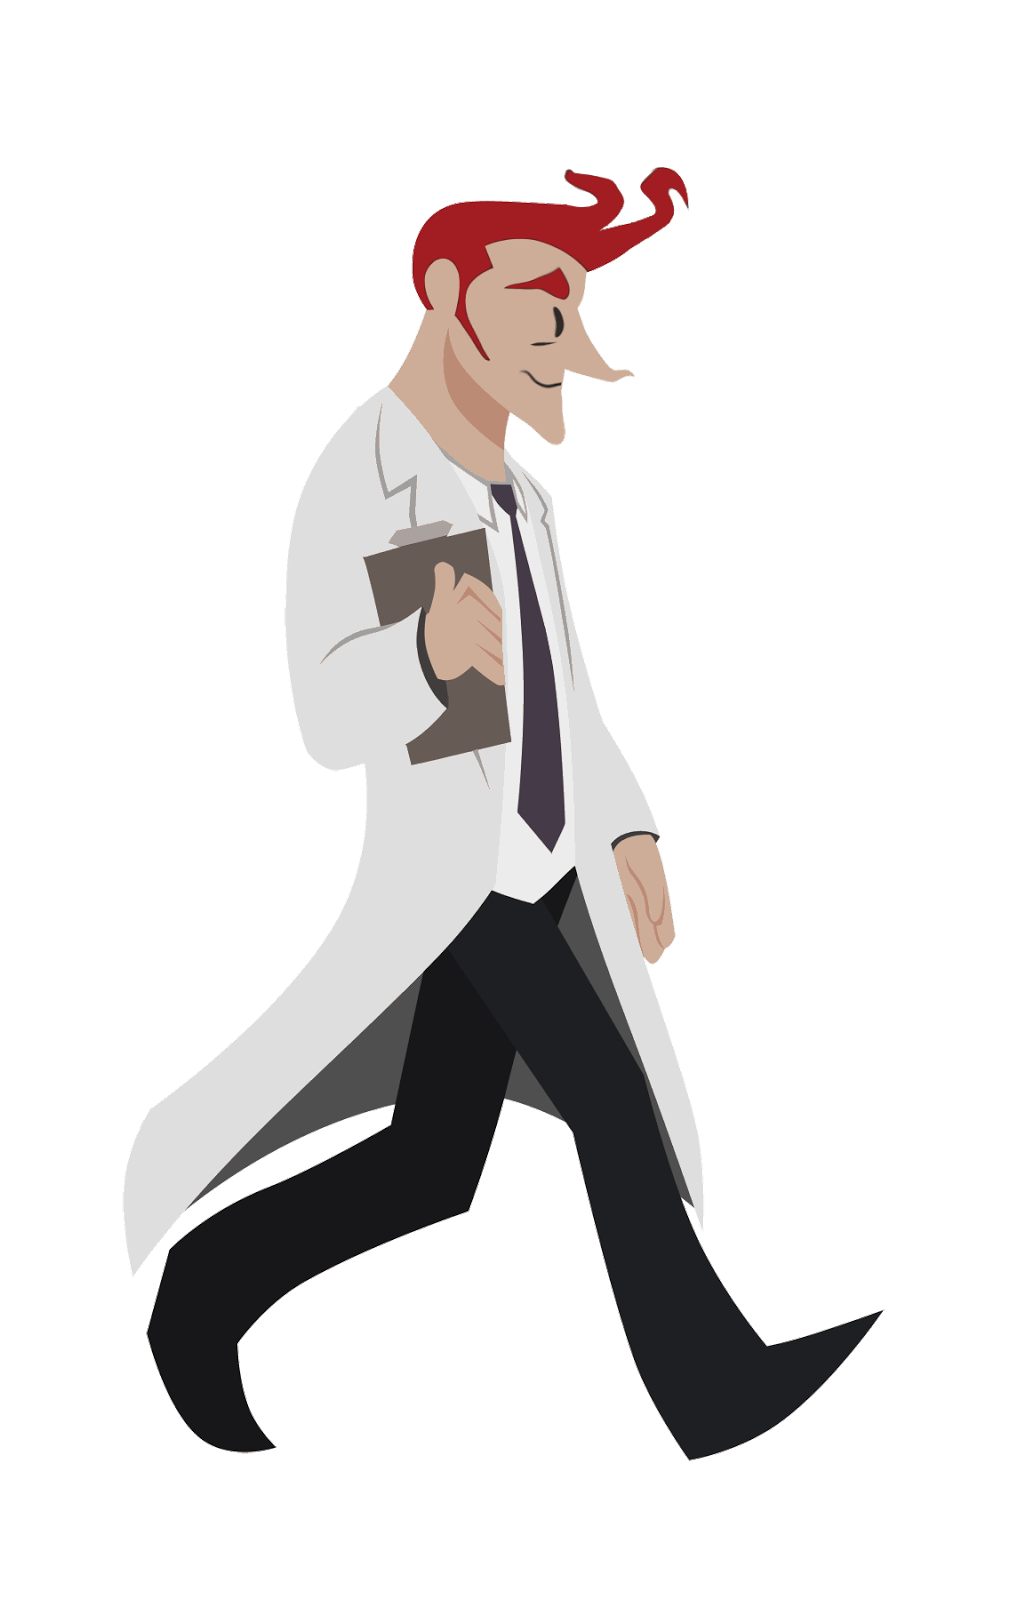 Walking scientist clipart banner black and white Walk cycle Animation Scientist Image GIF - Animation png ... banner black and white